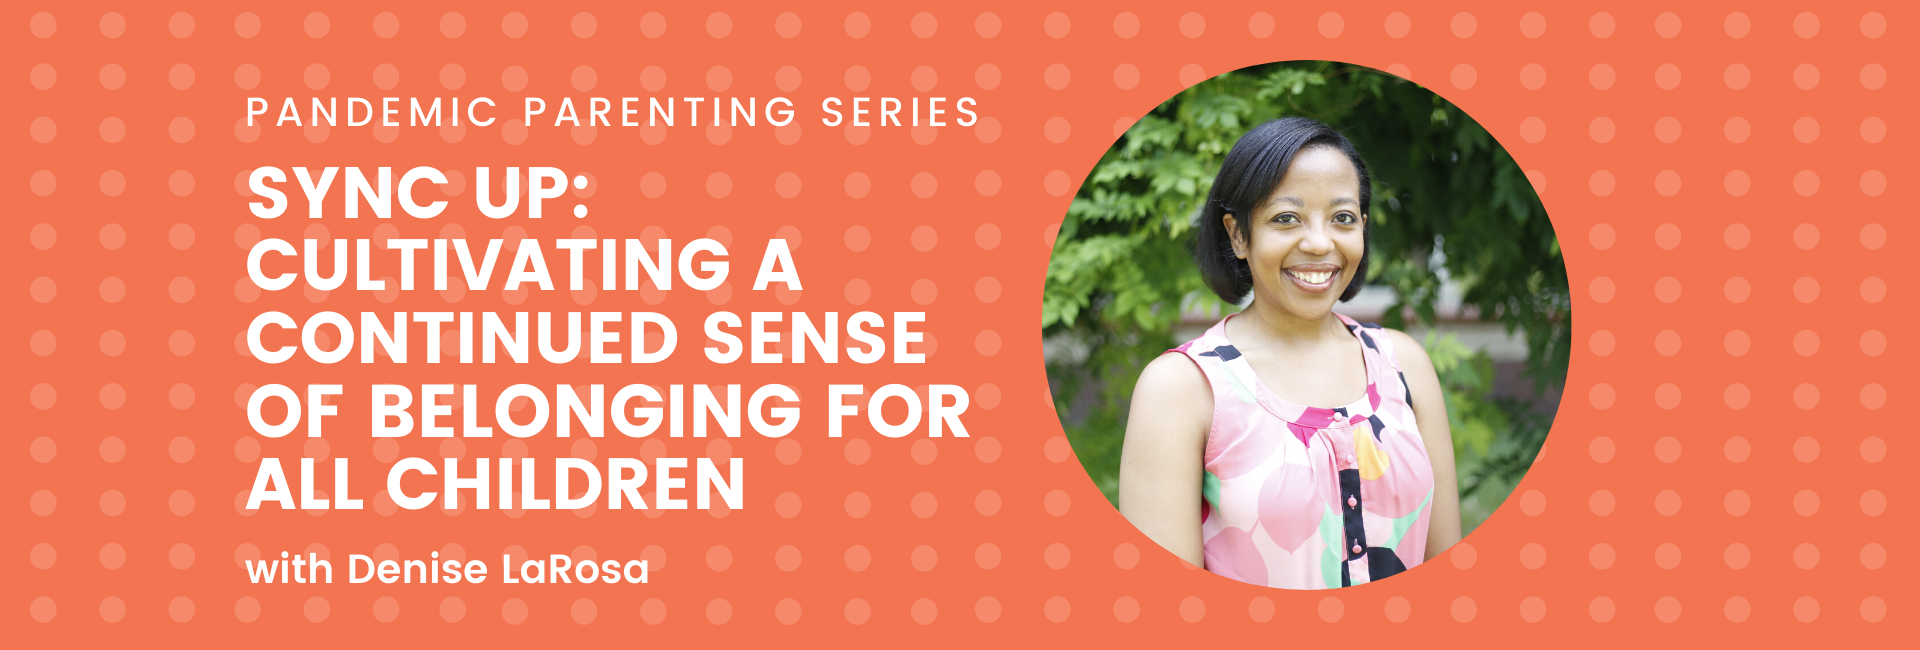 Sync Up: Cultivating a Continued Sense of Belonging for All Children